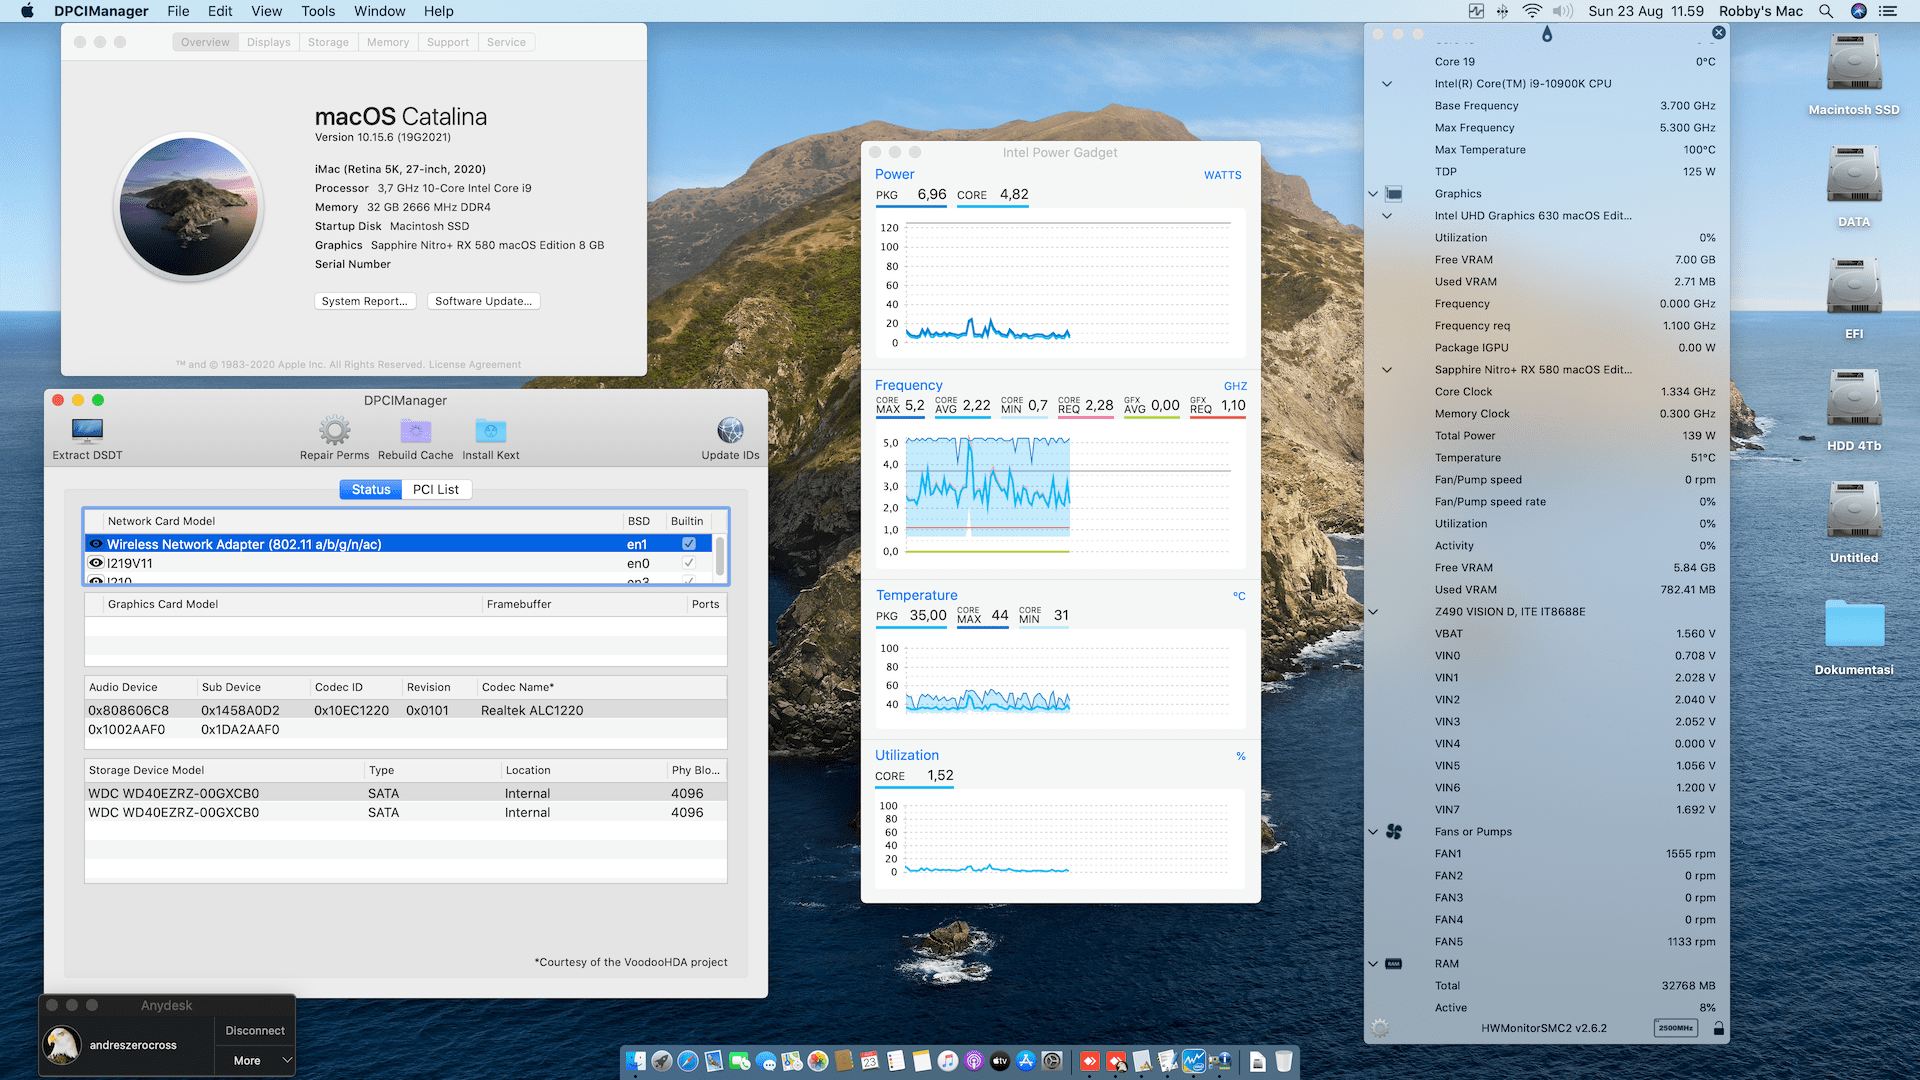 Success Hackintosh macOS Catalina 10.15.6 Build 19G2021 in Gigabyte Z490 Vision D + Intel Core i9 10900K + Sapphire Nitro+ RX 580